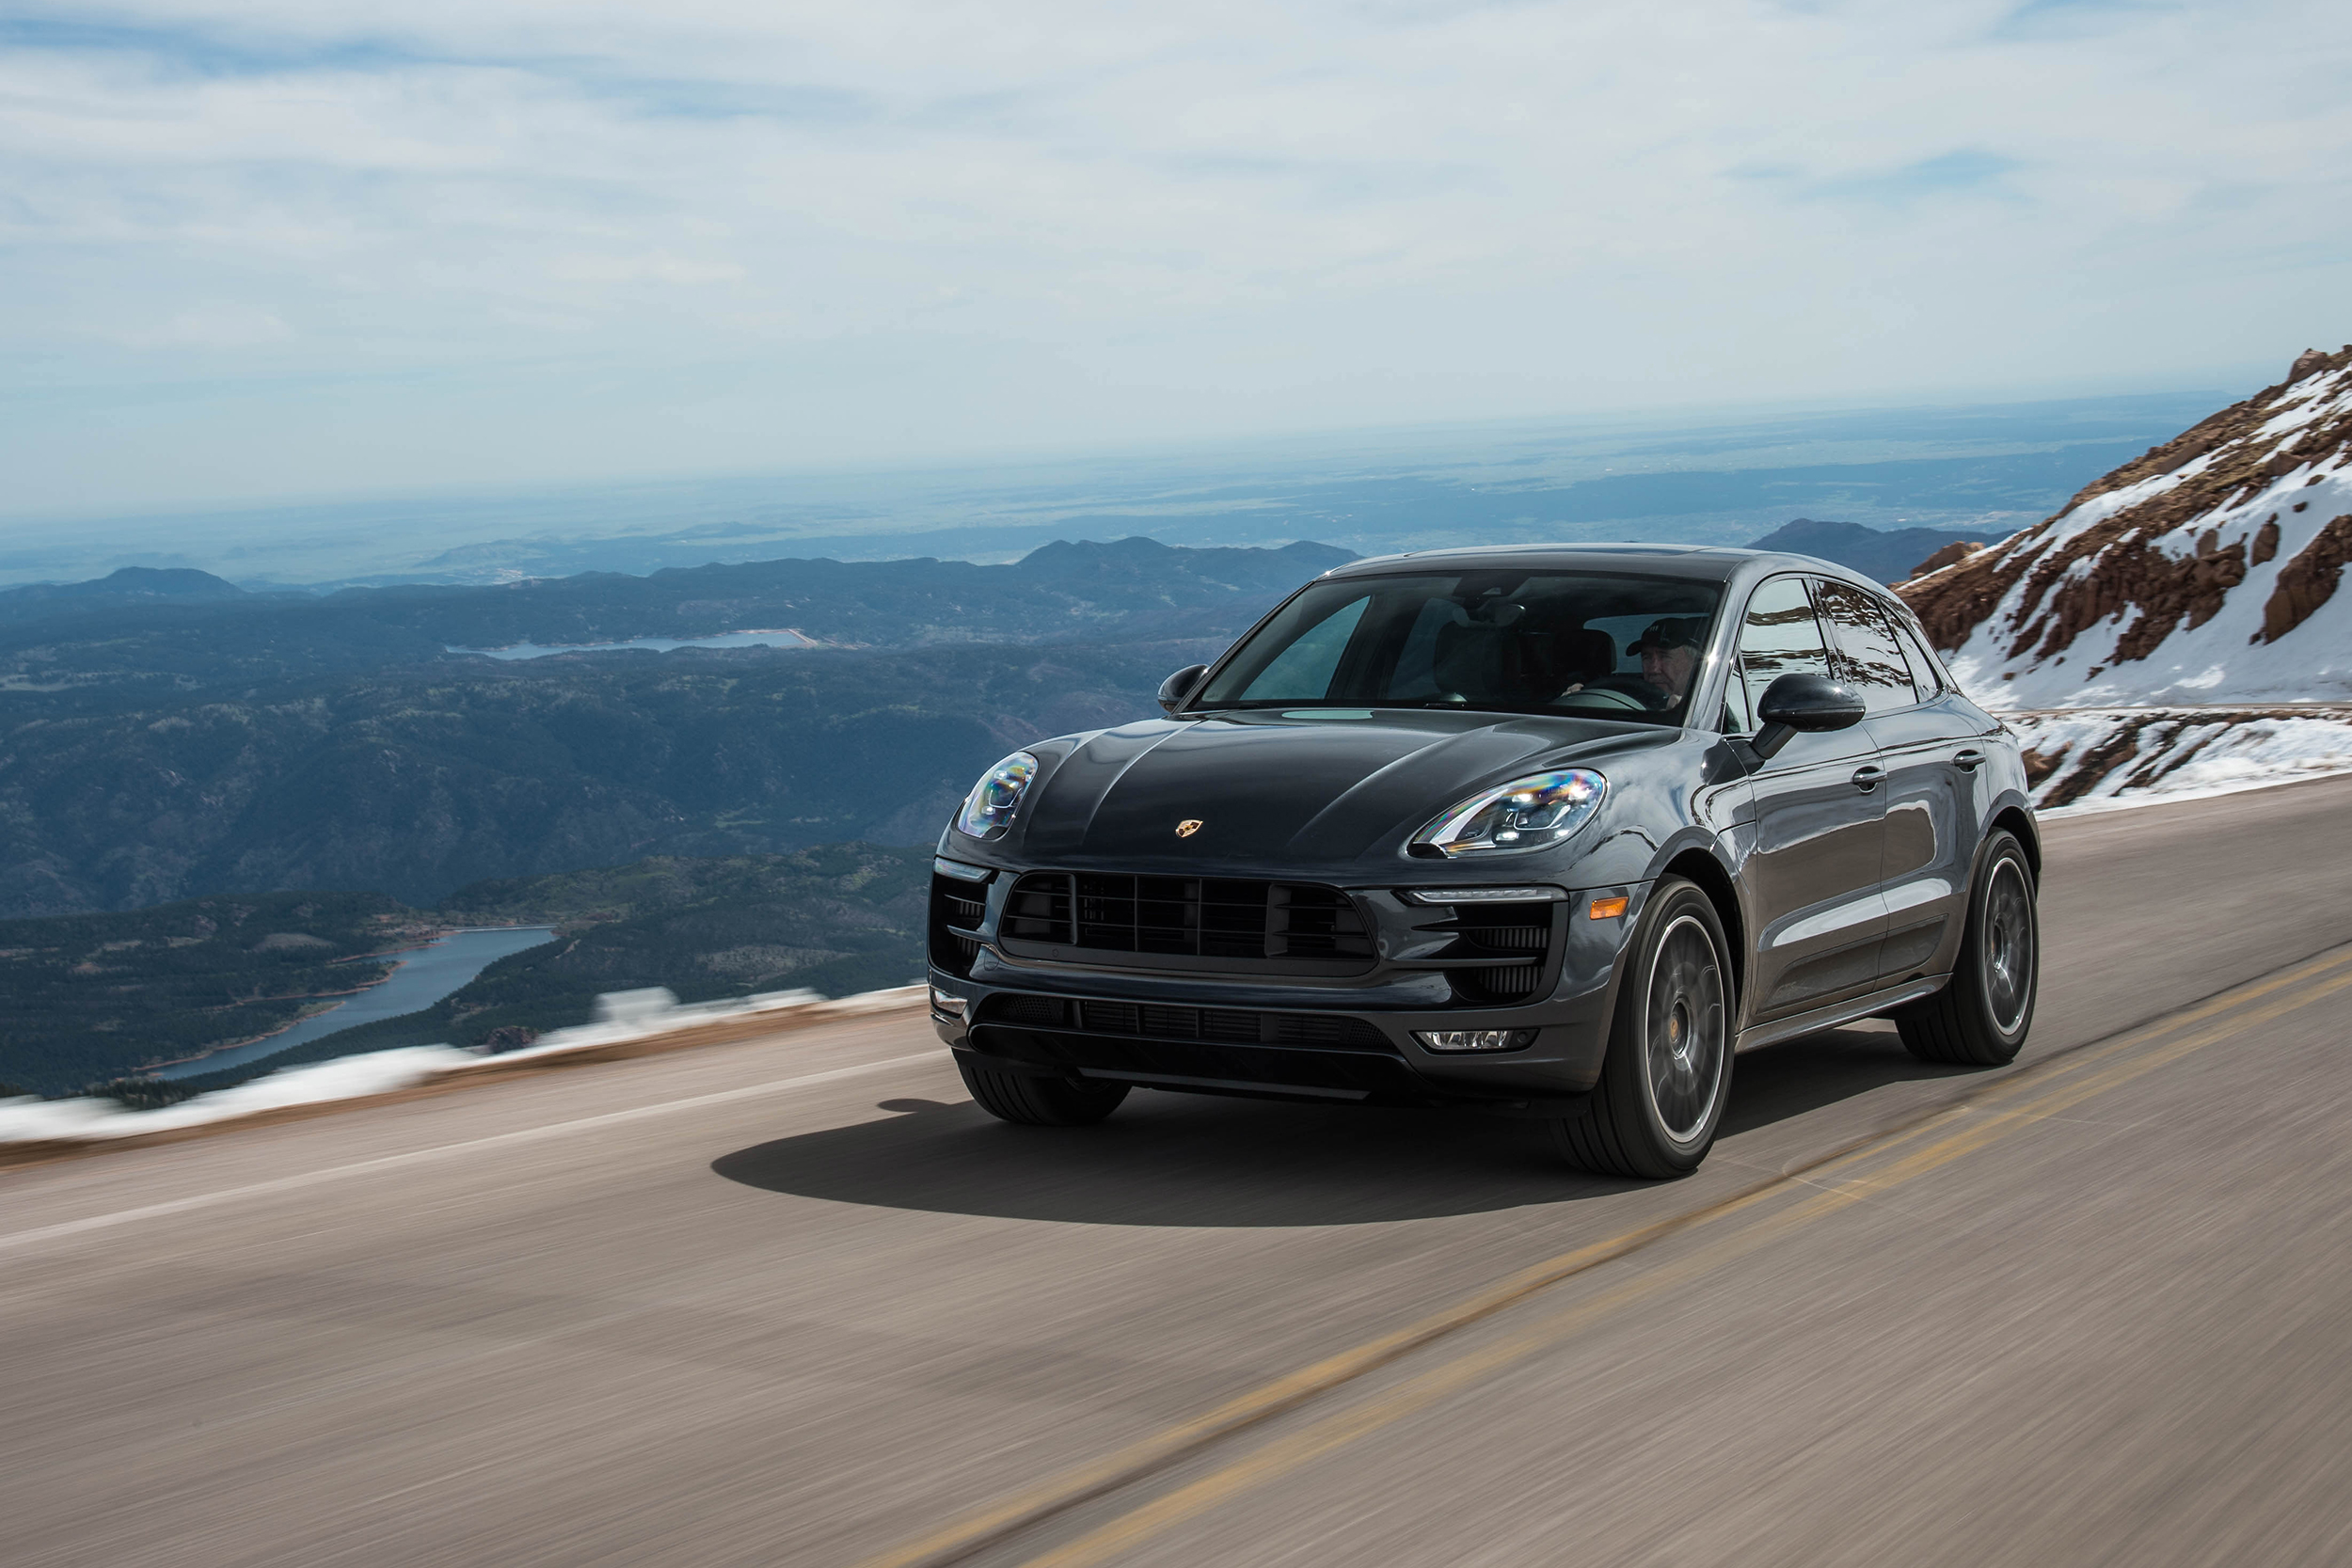 Porsche Macan Turbo 2018 International Price Amp Overview